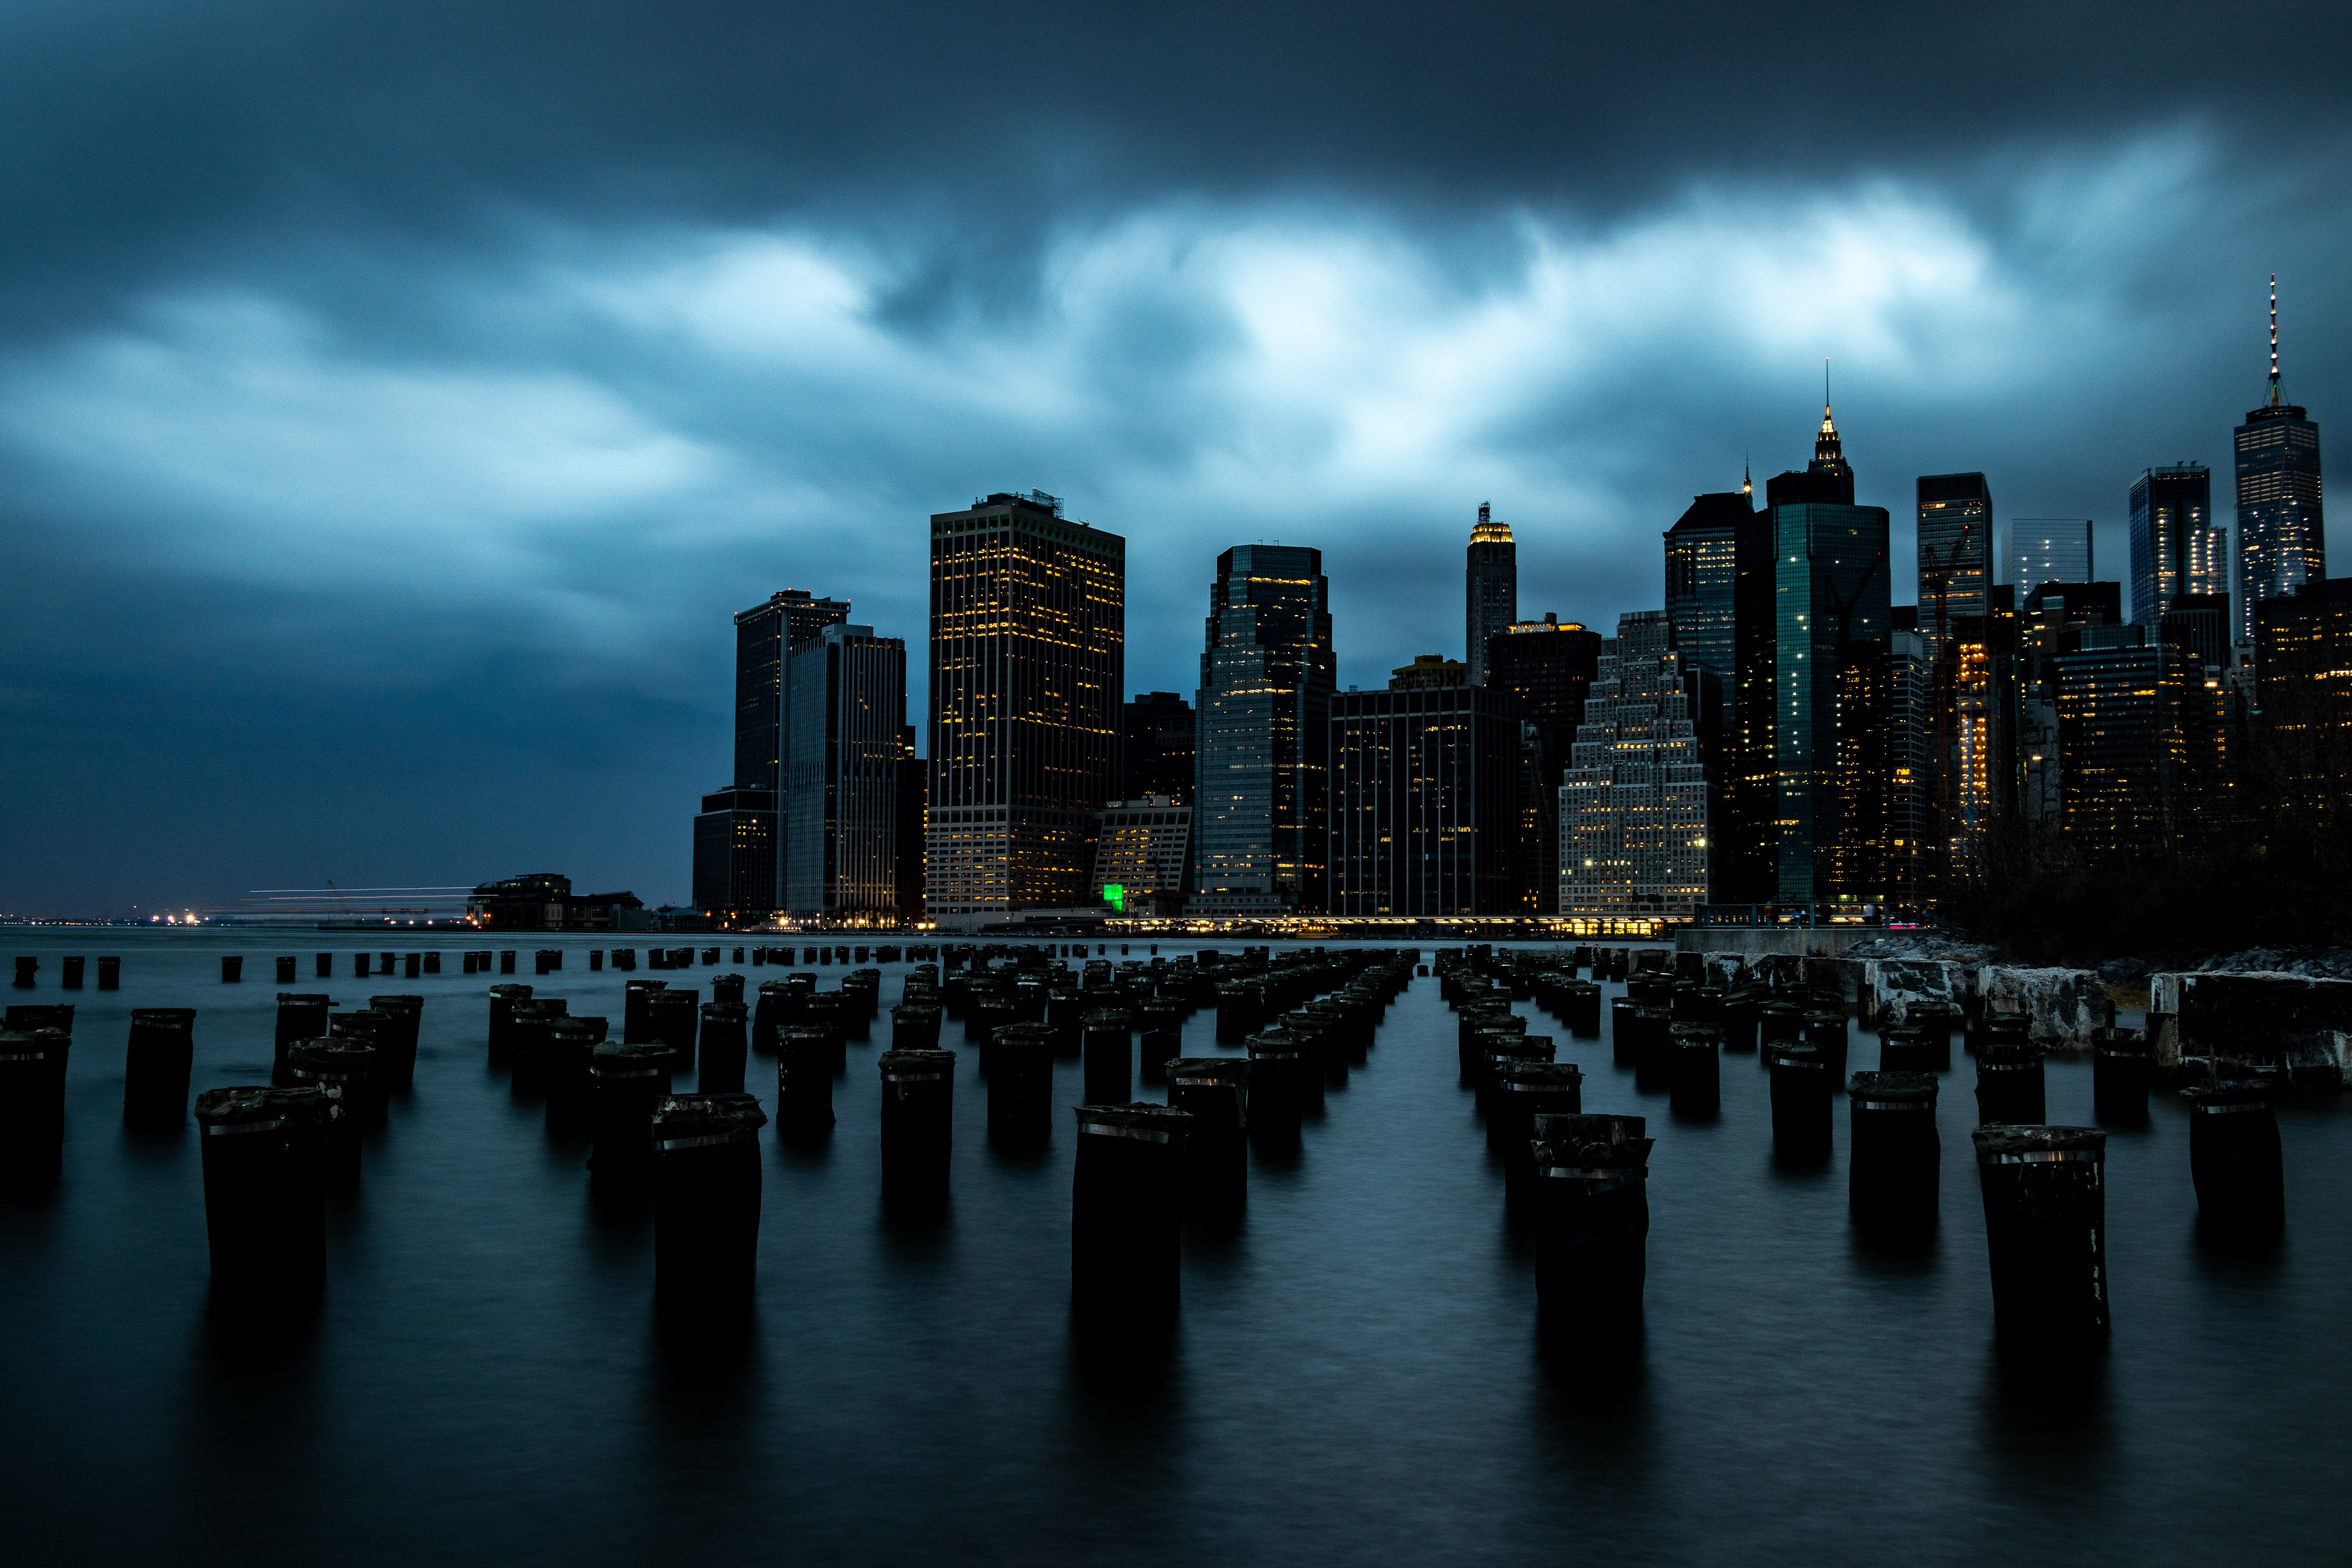 landscape photography of city buildings